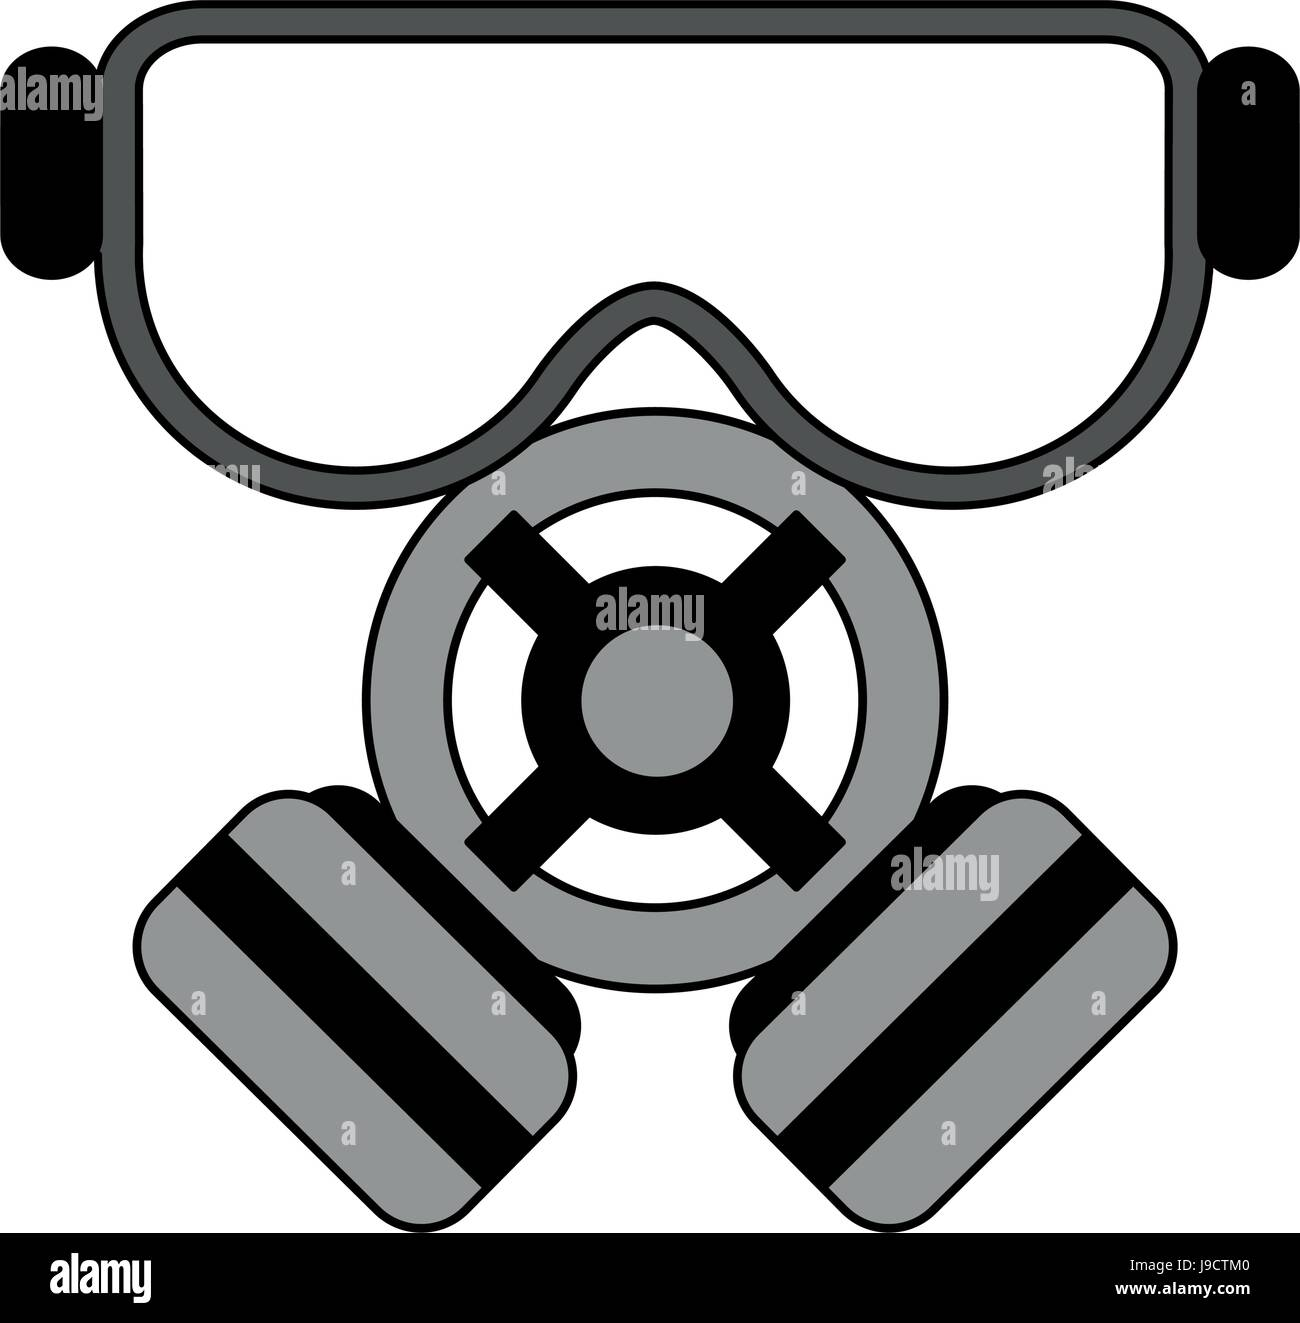 color image cartoon gas mask protection element stock vector art rh alamy com cartoon drawing gas mask cartoon character with gas mask